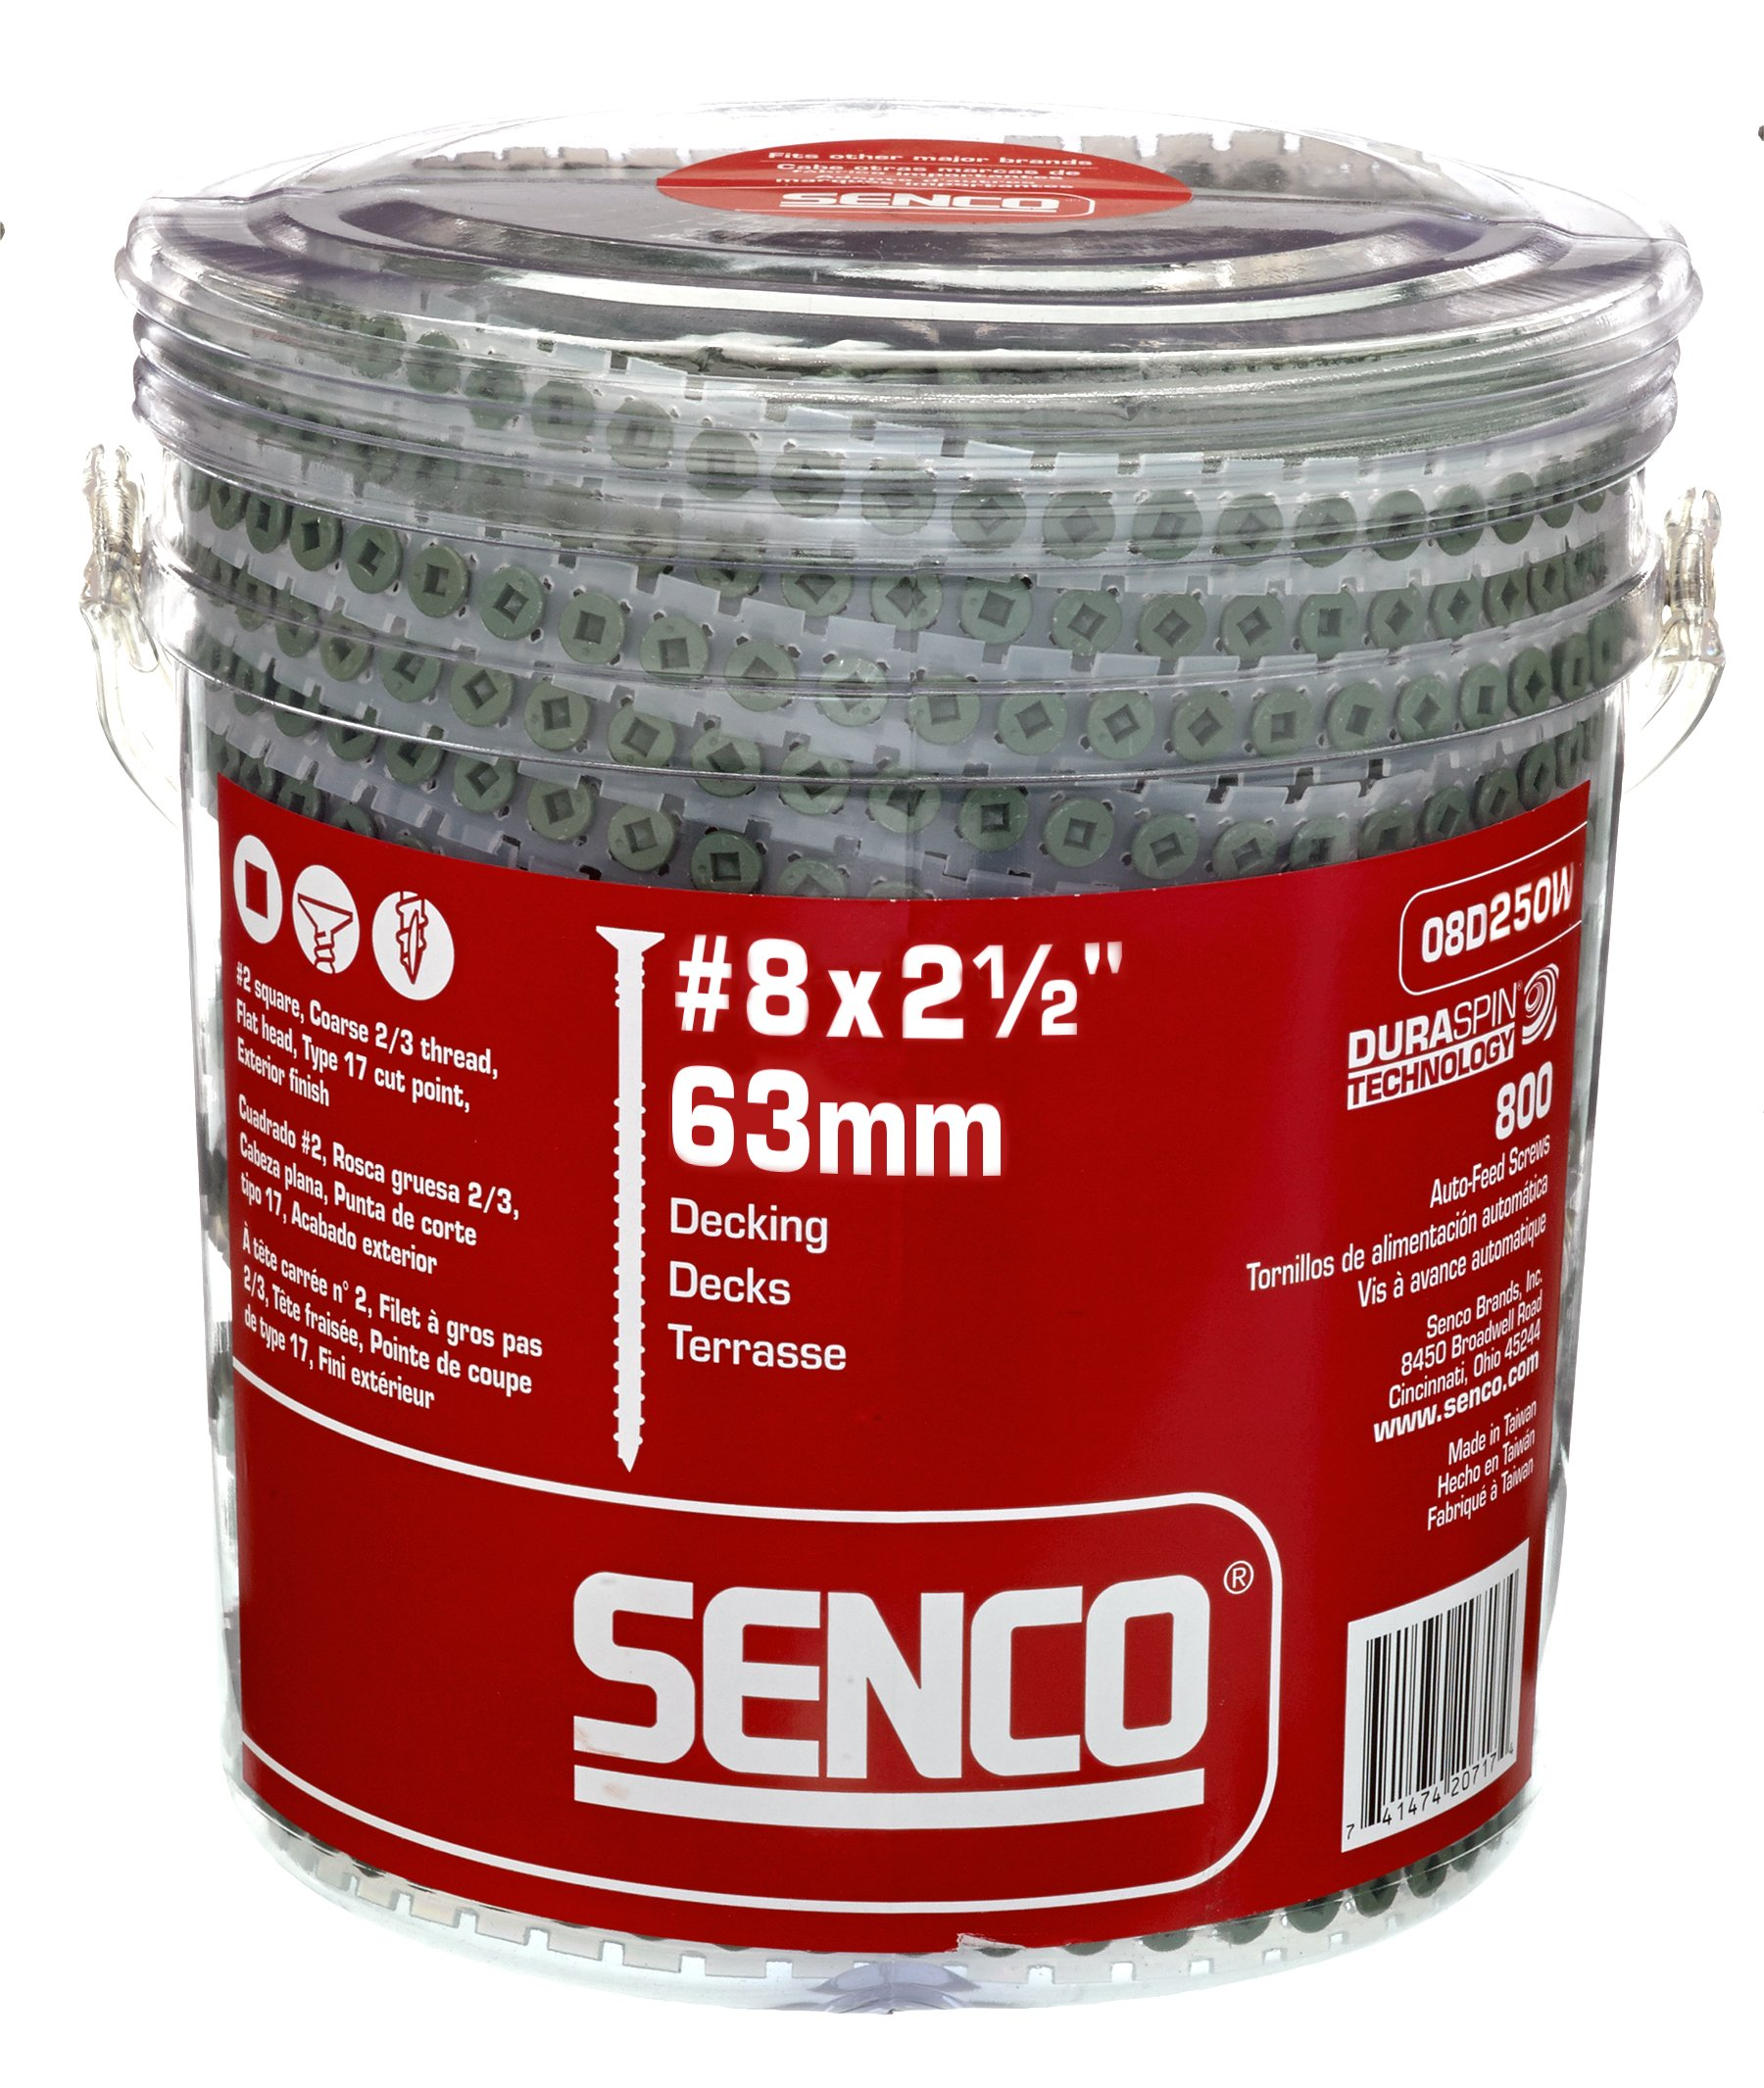 Senco 08D250W DuraSpin Screw Number 8 by 2-1/2-Inch All Purpose Exterior Wood Collated Screw (800 per Box) by Senco